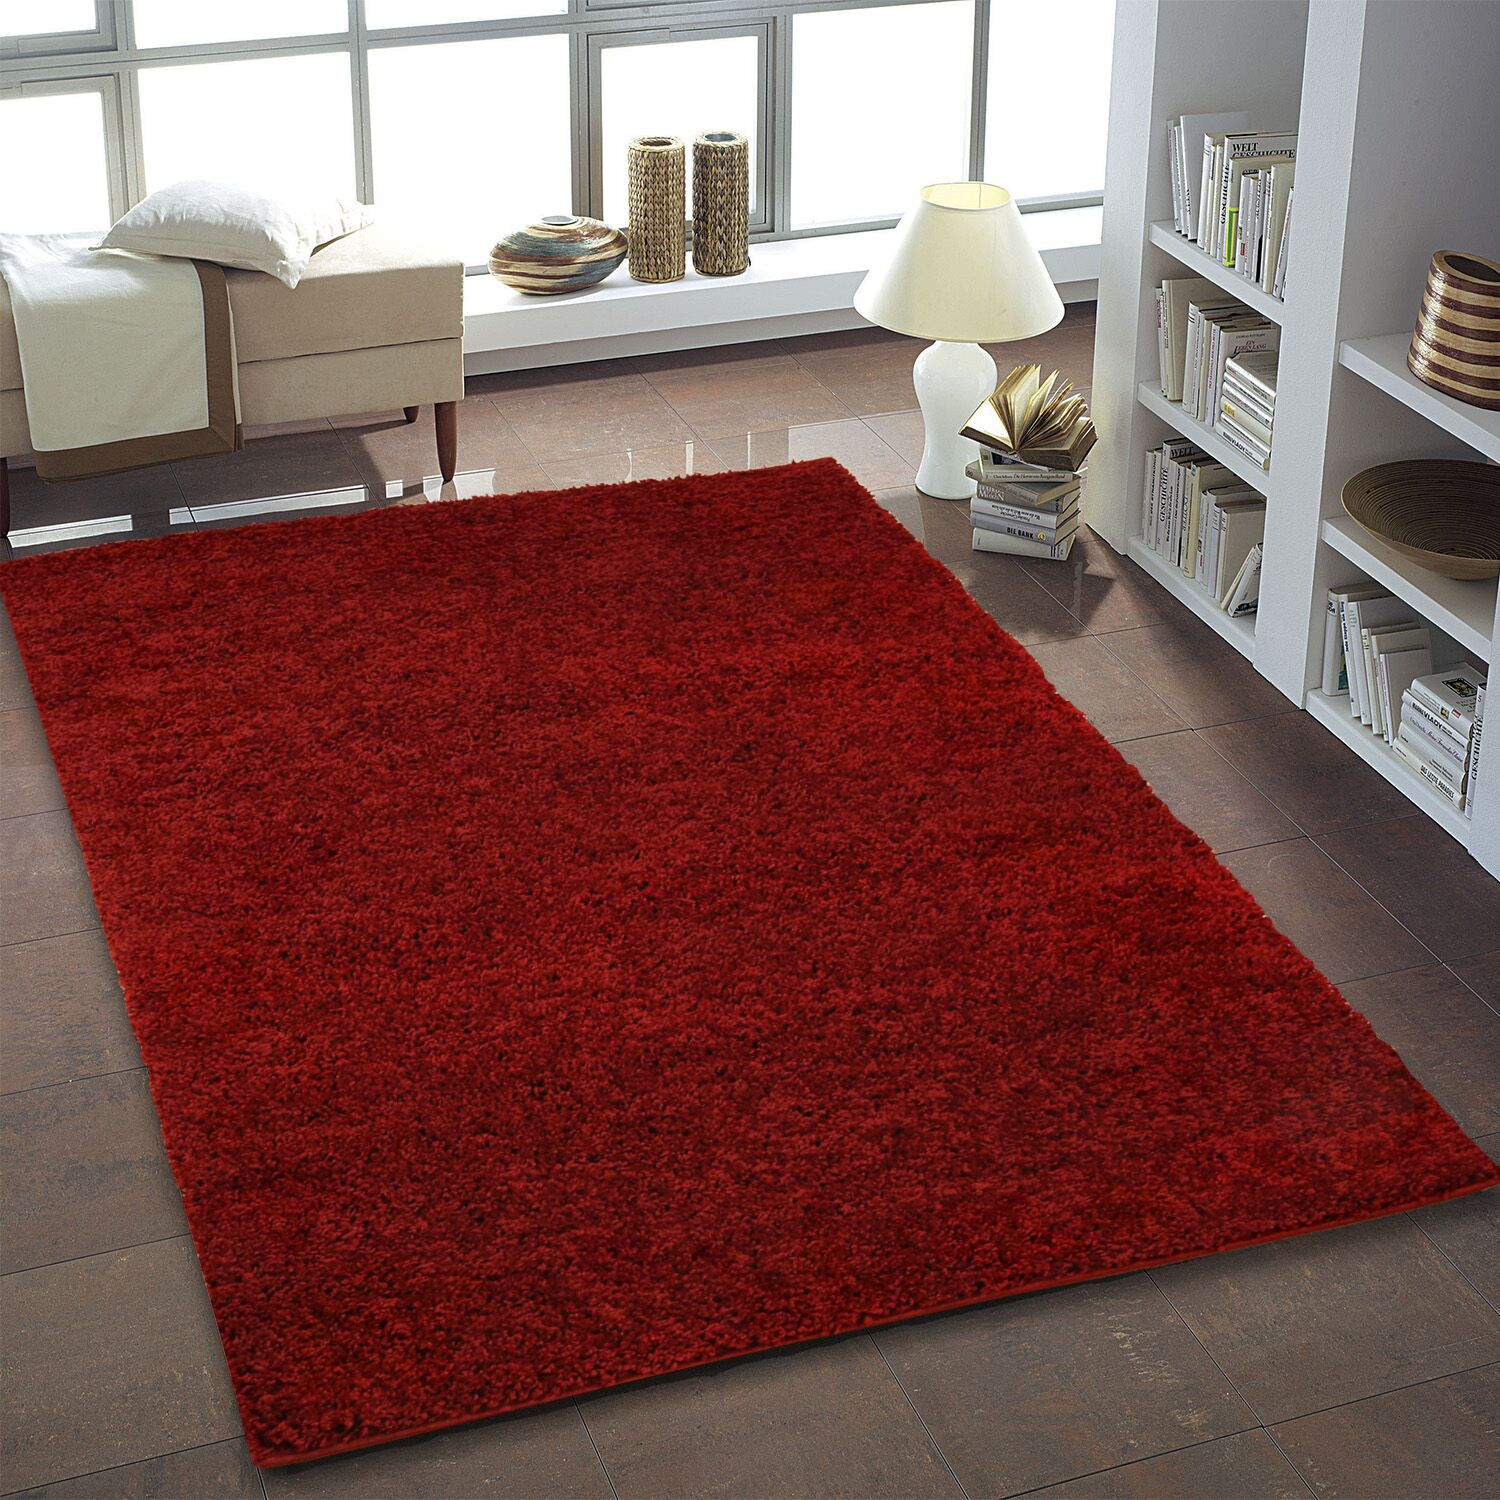 Bombay Red Area Rug Rug Size: 3'9